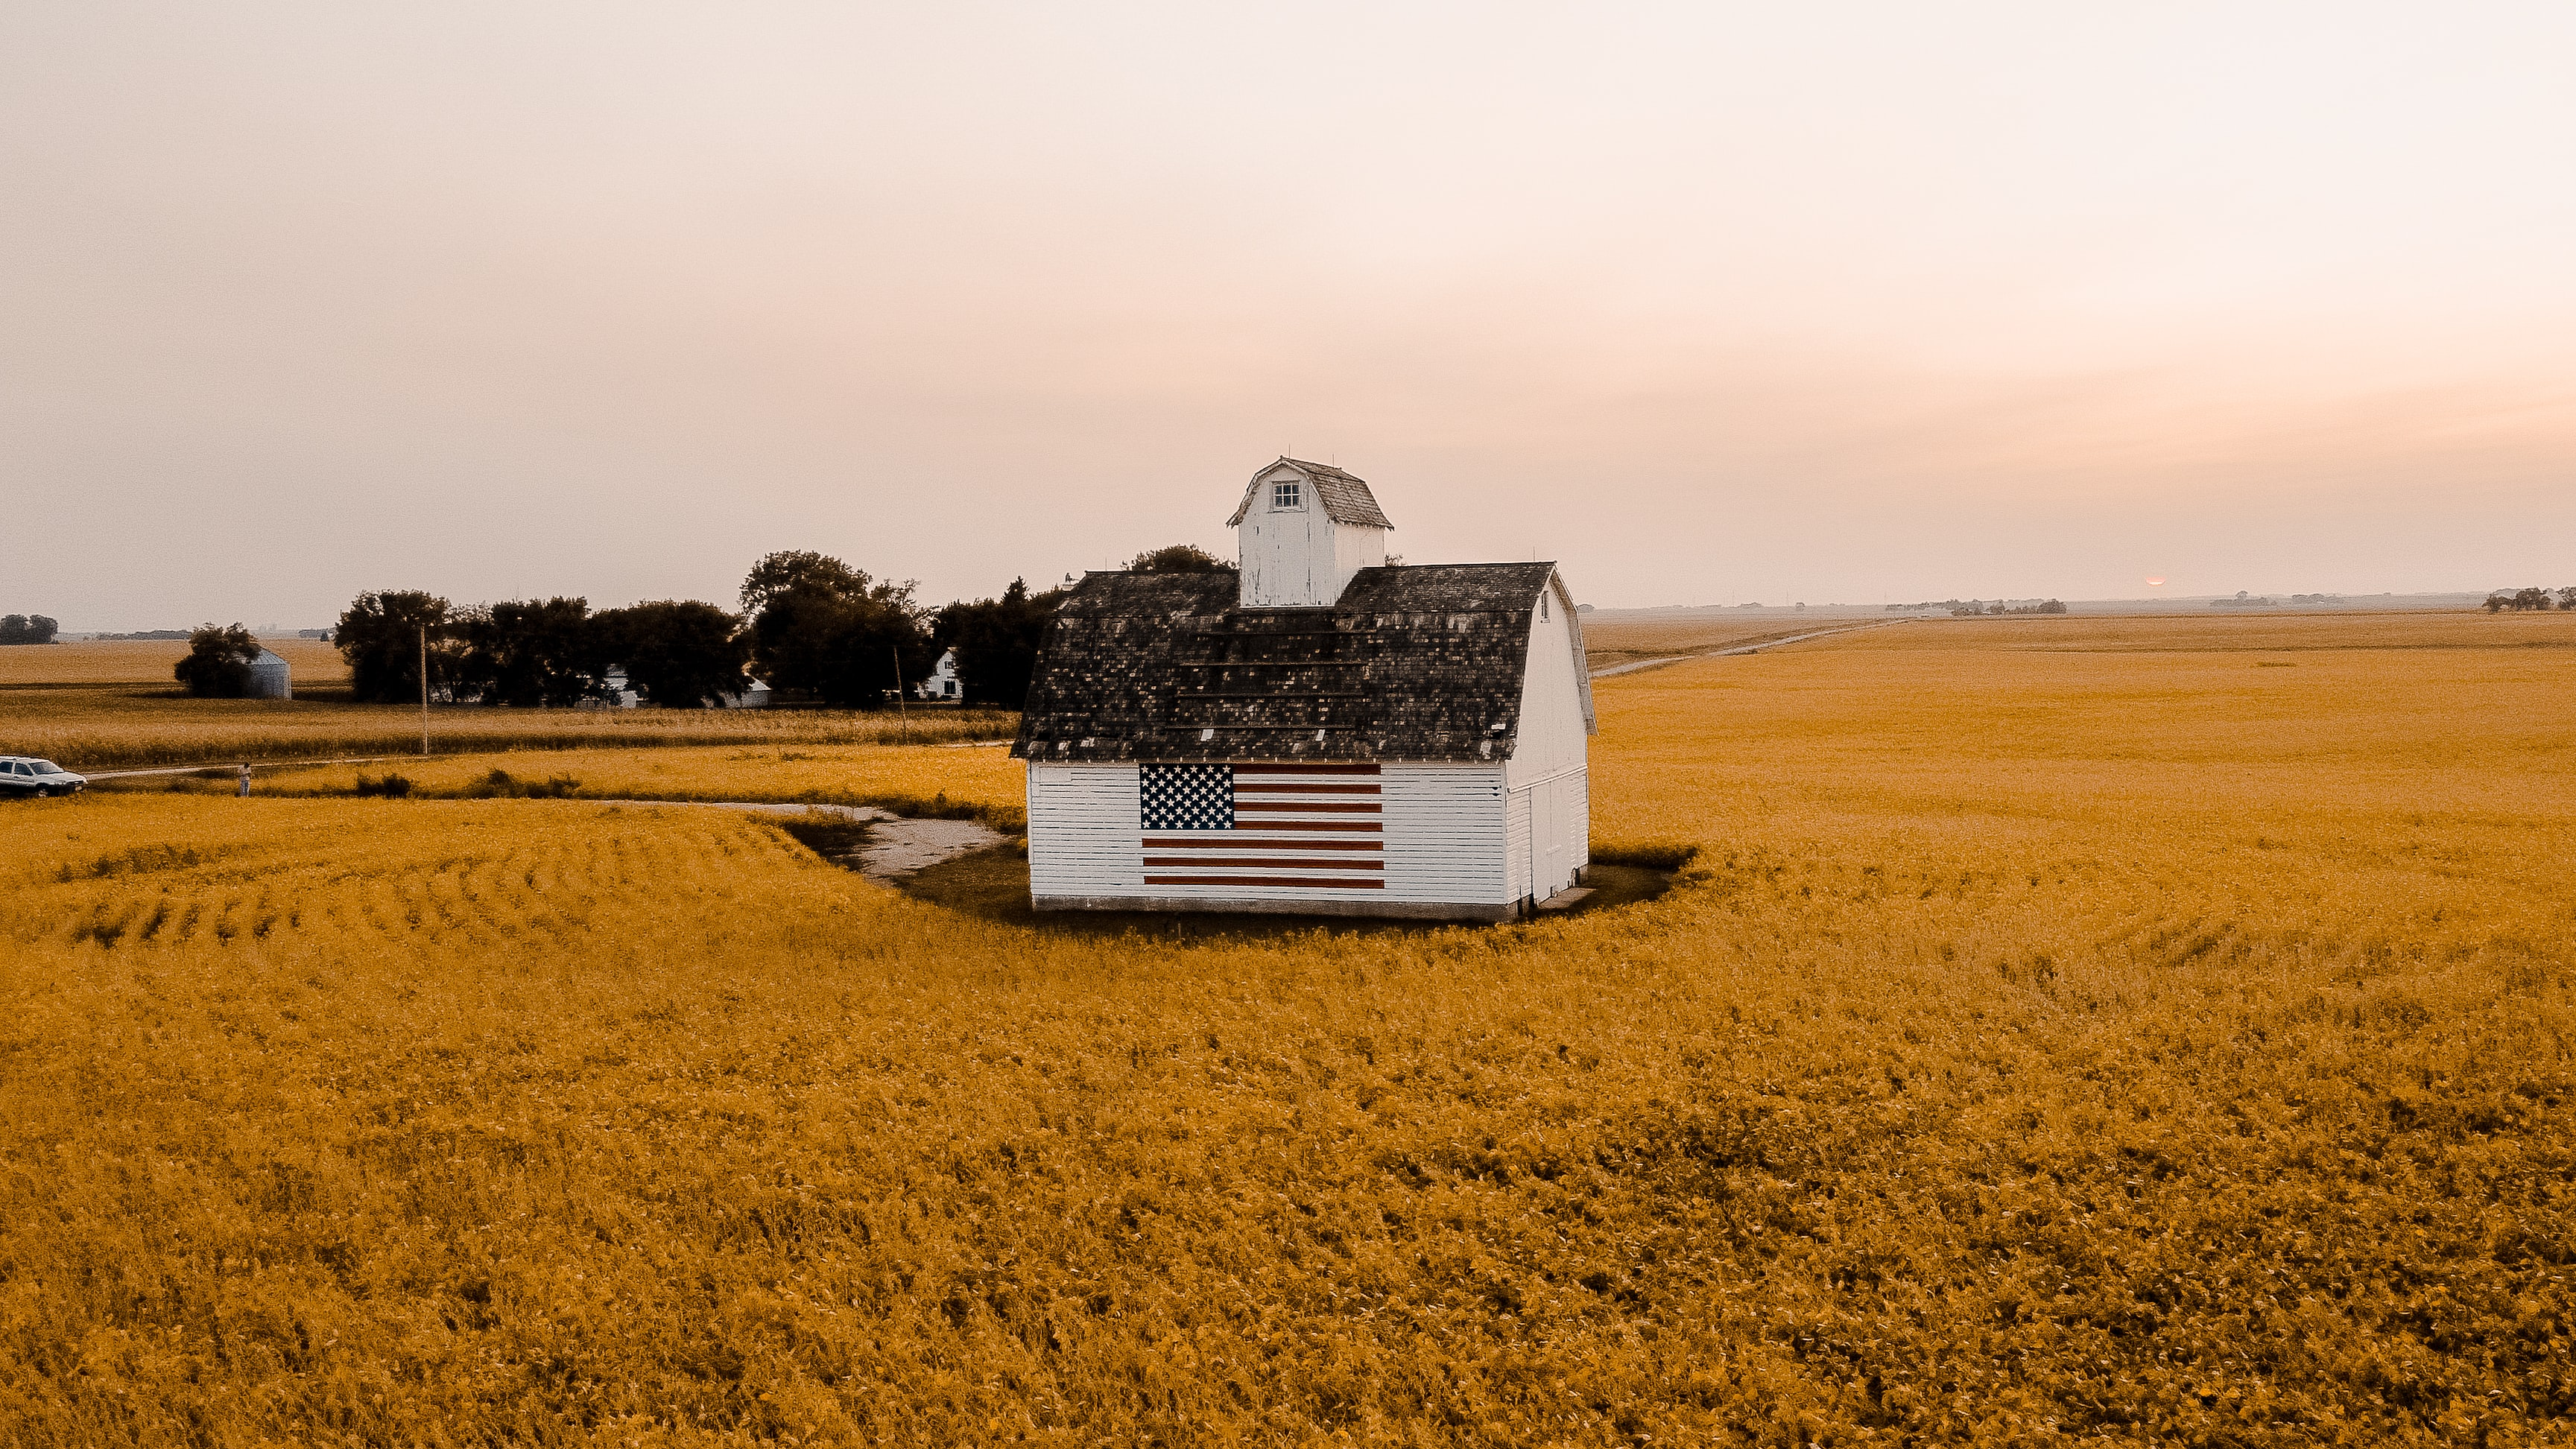 Barn with American flag on the side. Bellevue, NE Miller Financial Group